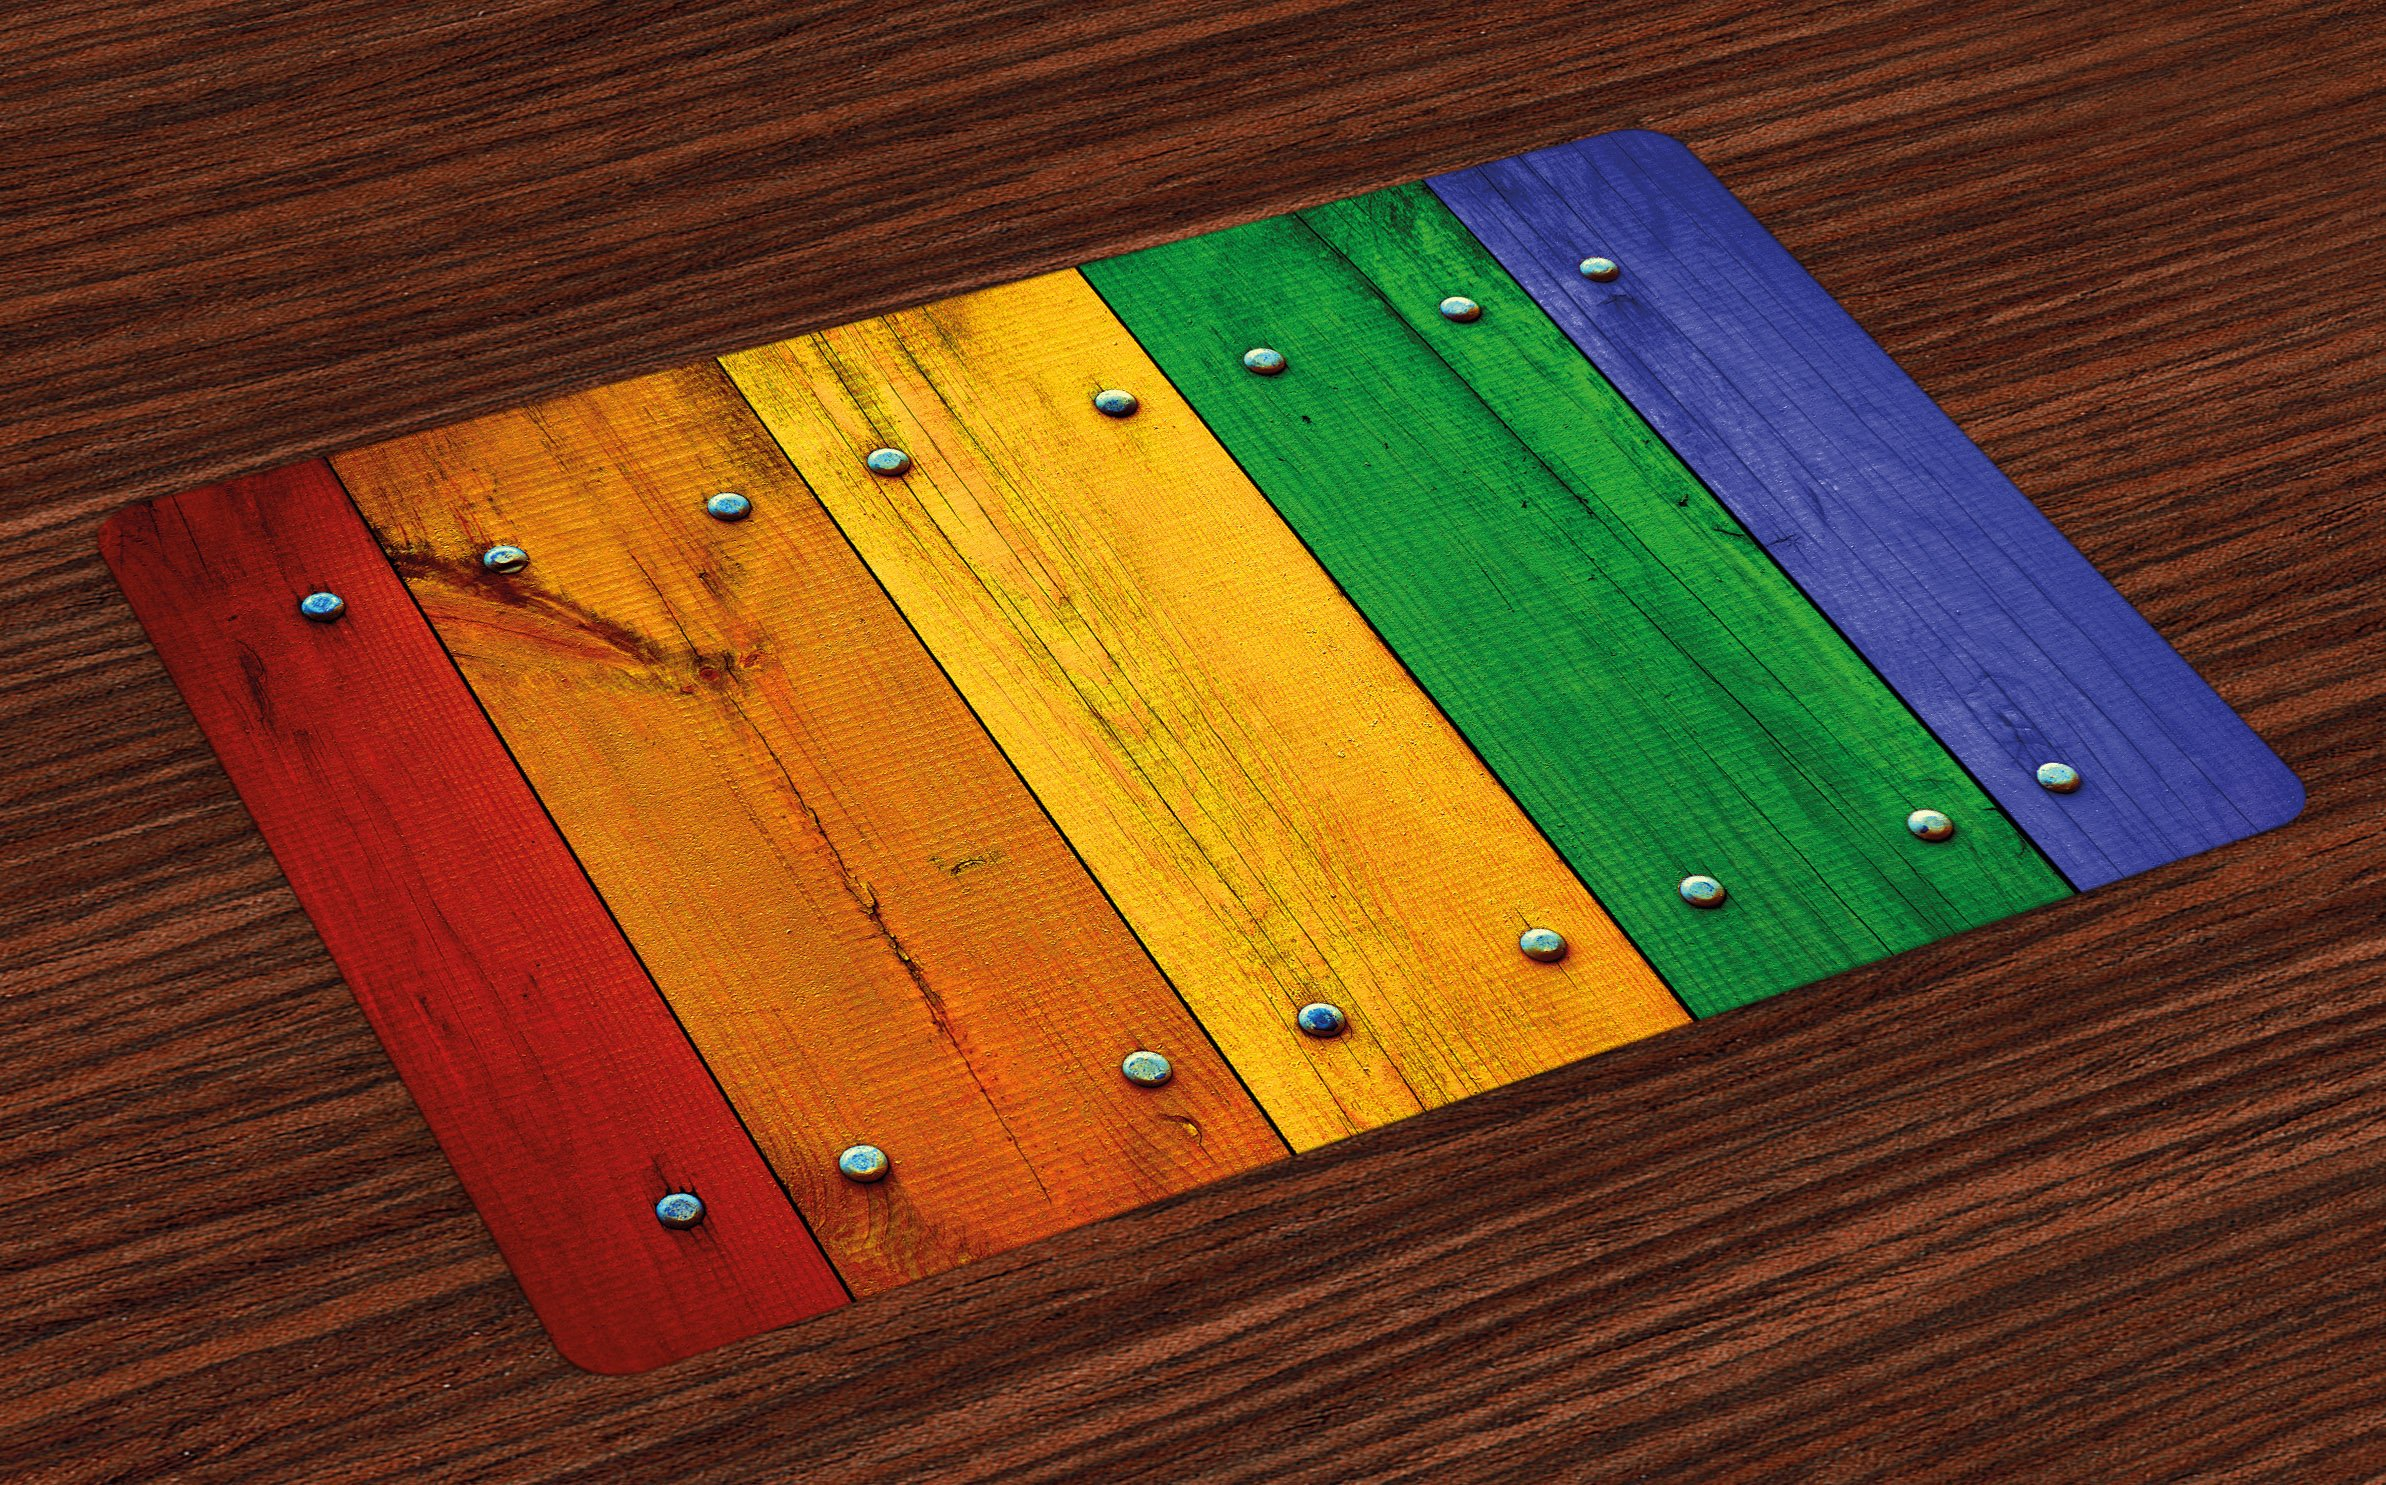 Lunarable Modern Place Mats Set of 4, Rainbow Colored Red Marigold Green and Blue Painted Woods Farm Door Image Print, Washable Fabric Placemats for Dining Room Kitchen Table Decoration, Multicolor by Lunarable (Image #1)